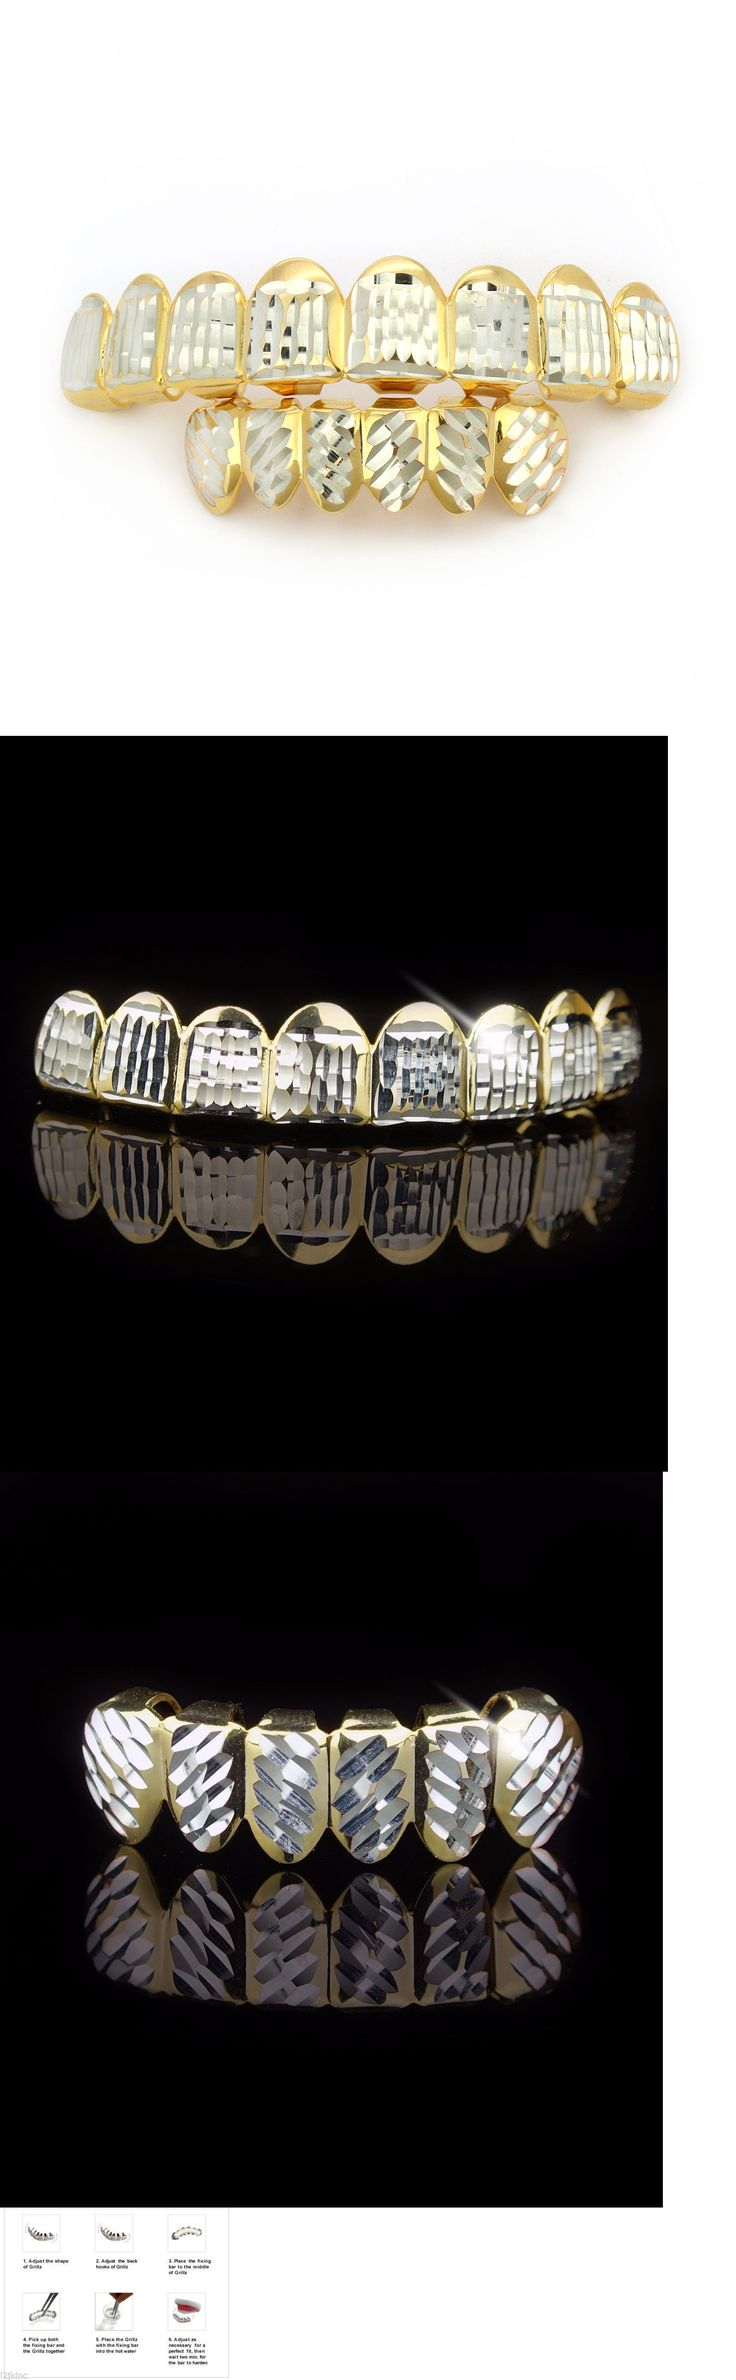 Grillz Dental Grills 152808: New 14K Gold Plated Hip Hop Diamond Cut Down 8 Teeth Grillz Top And Bottom Set BUY IT NOW ONLY: $250.0